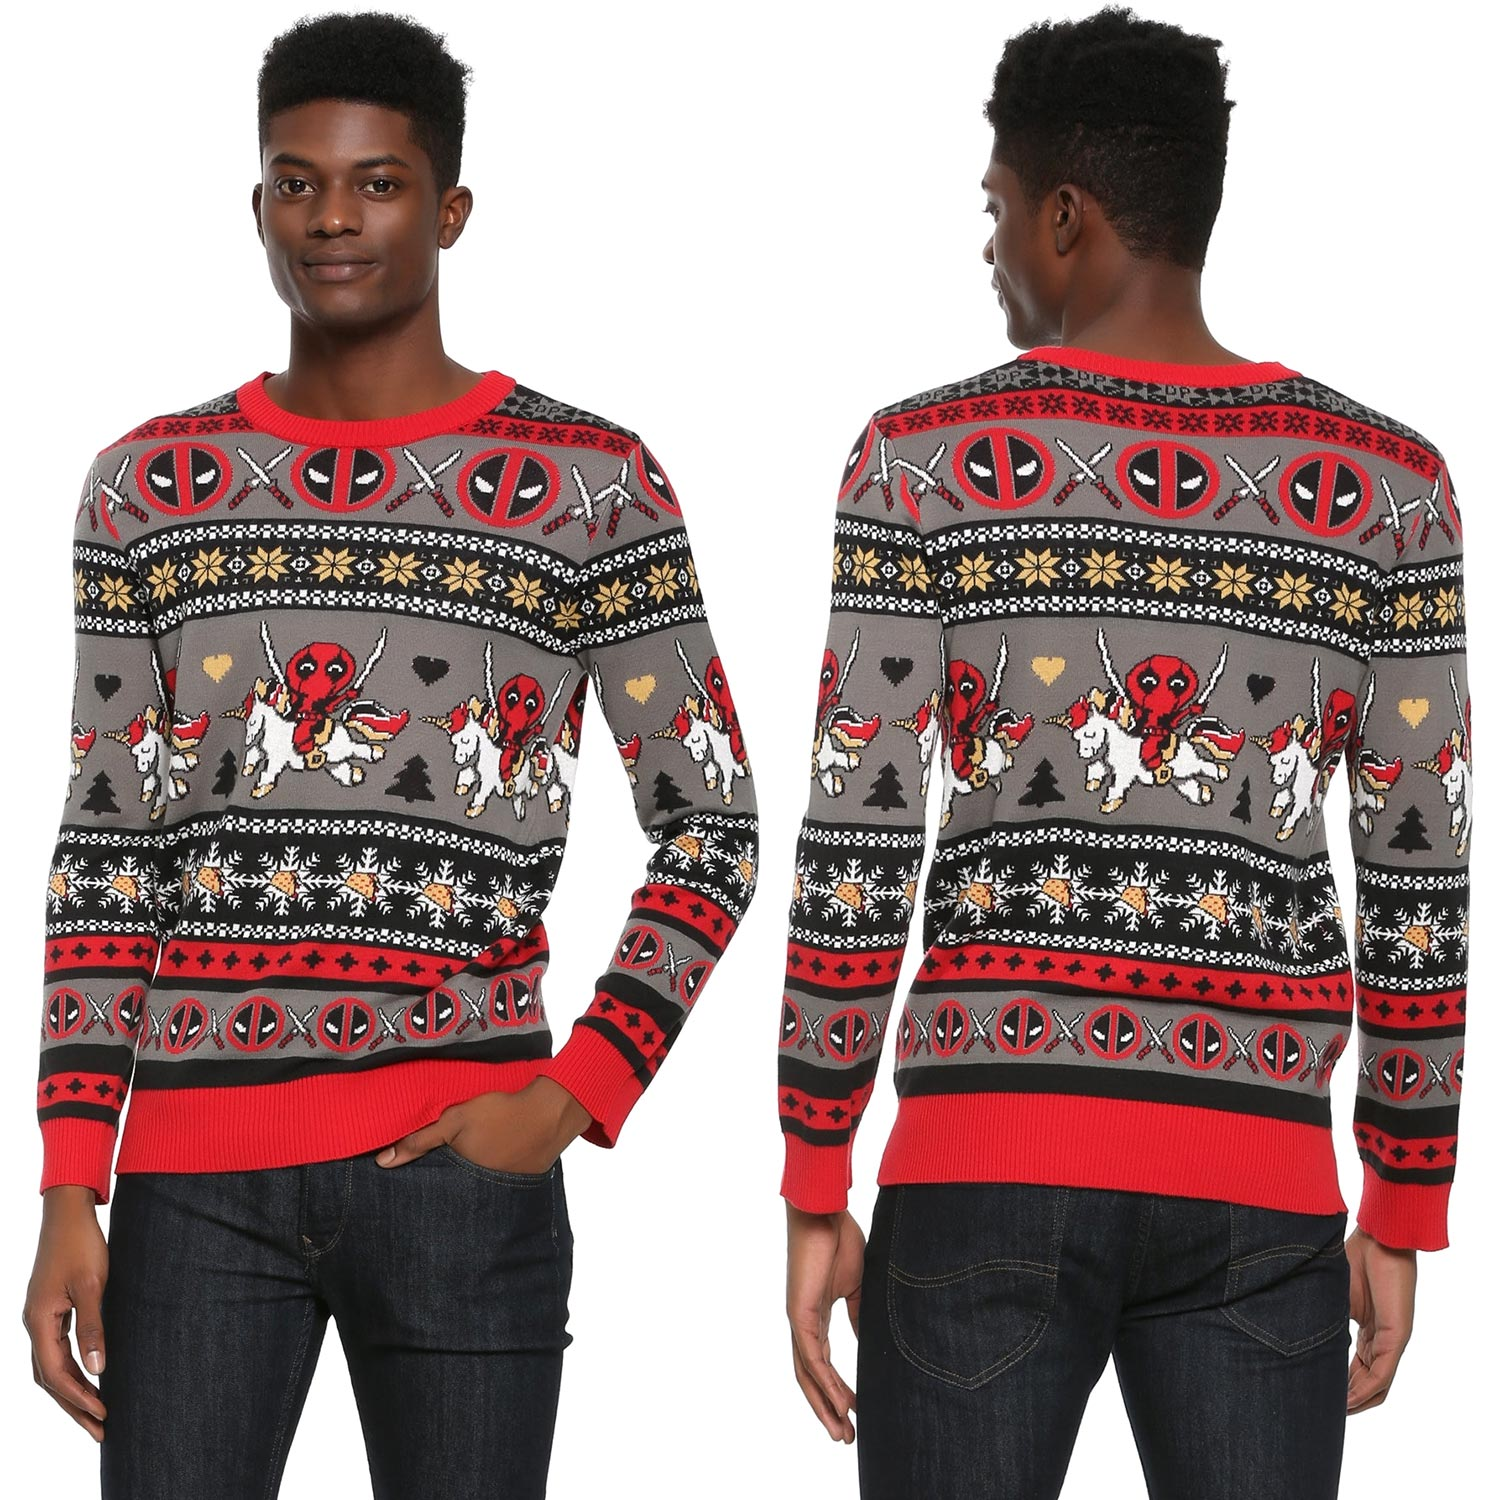 Marvel Deadpool Young Men's Christmas Sweater  Deadpool Christmas Sweater